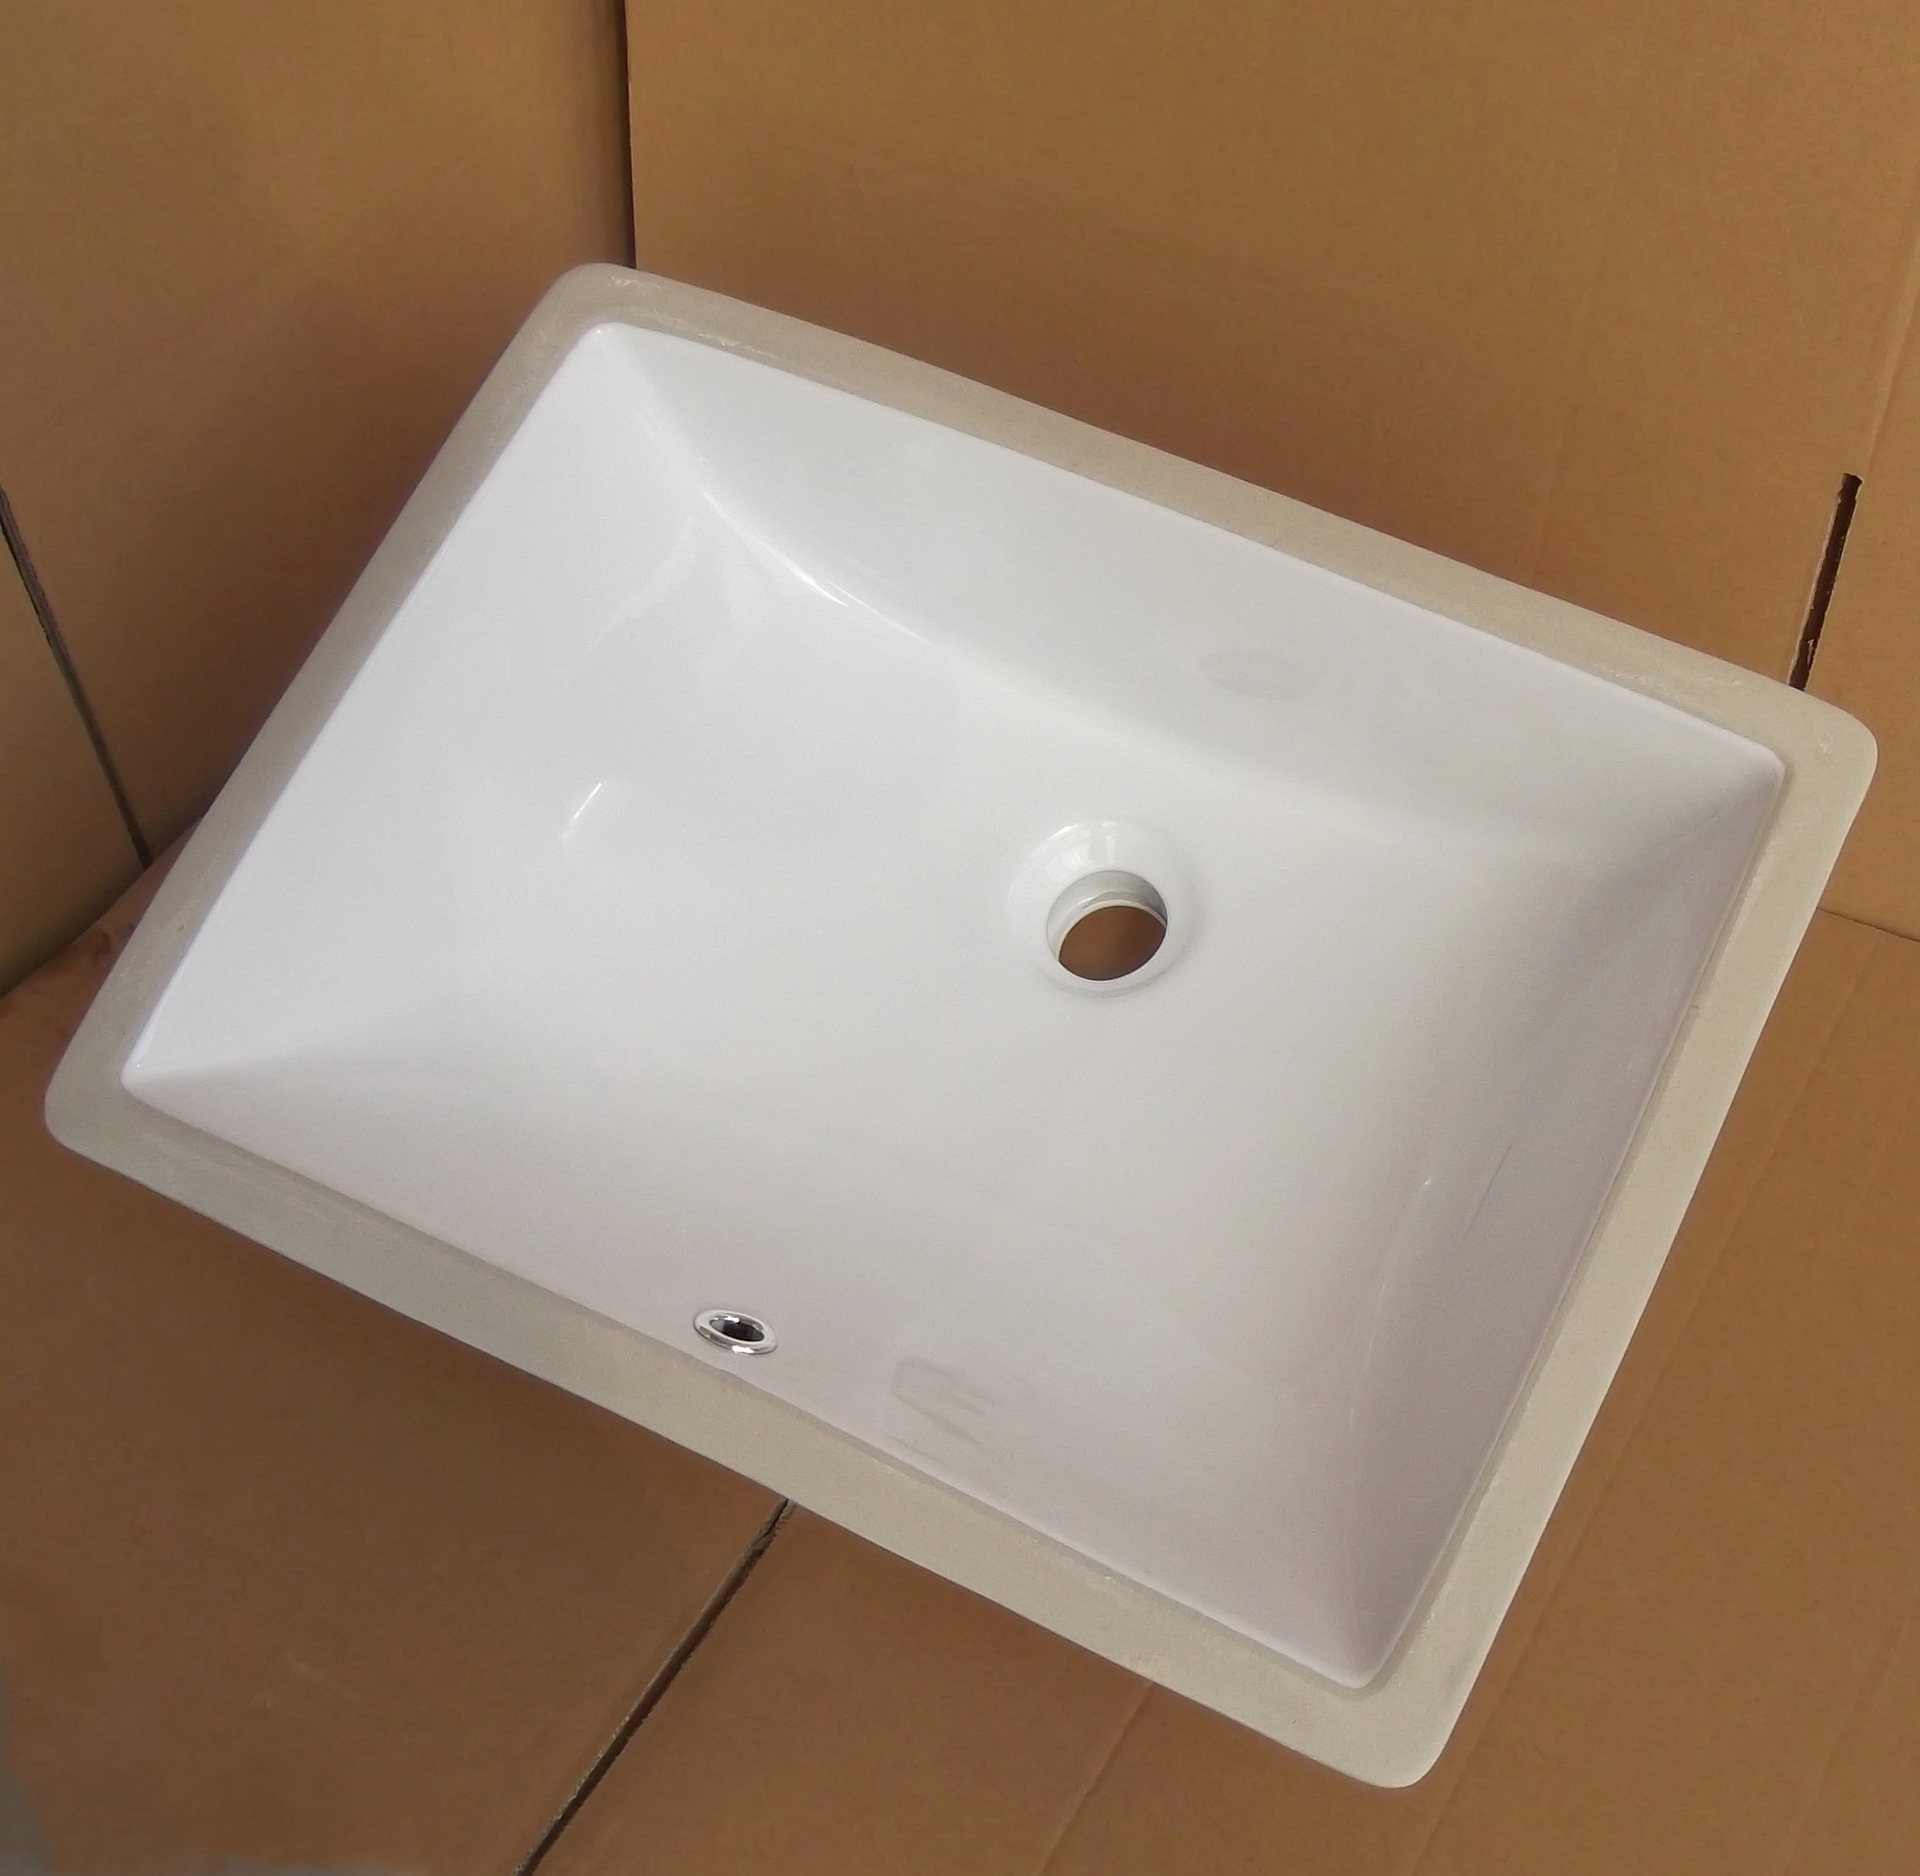 Rectangular  Undermount Porcelain Bathroom Sink